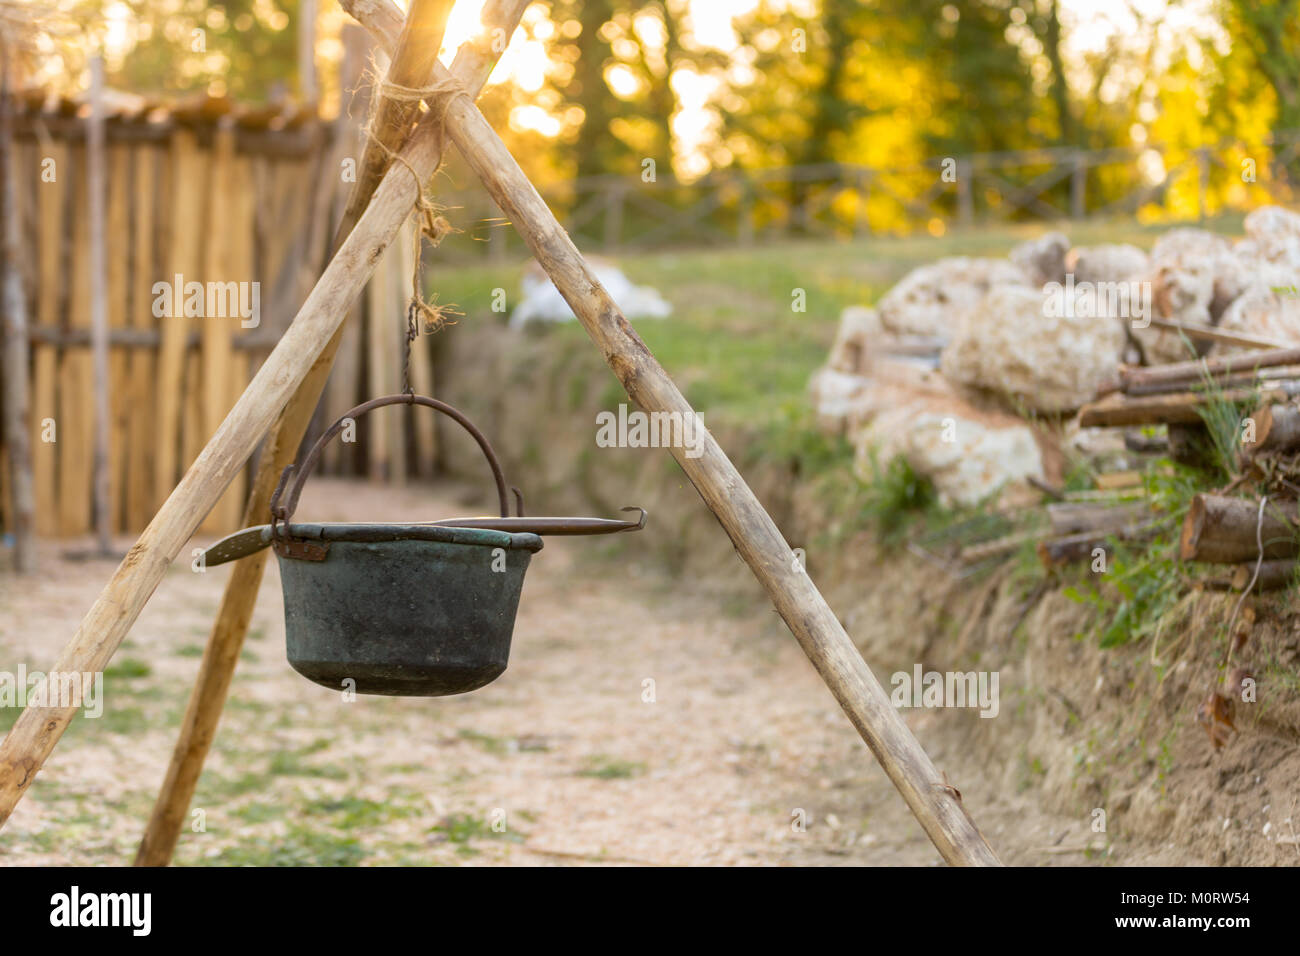 beautifull ancient copper pot tied to logs to cook food stock photo